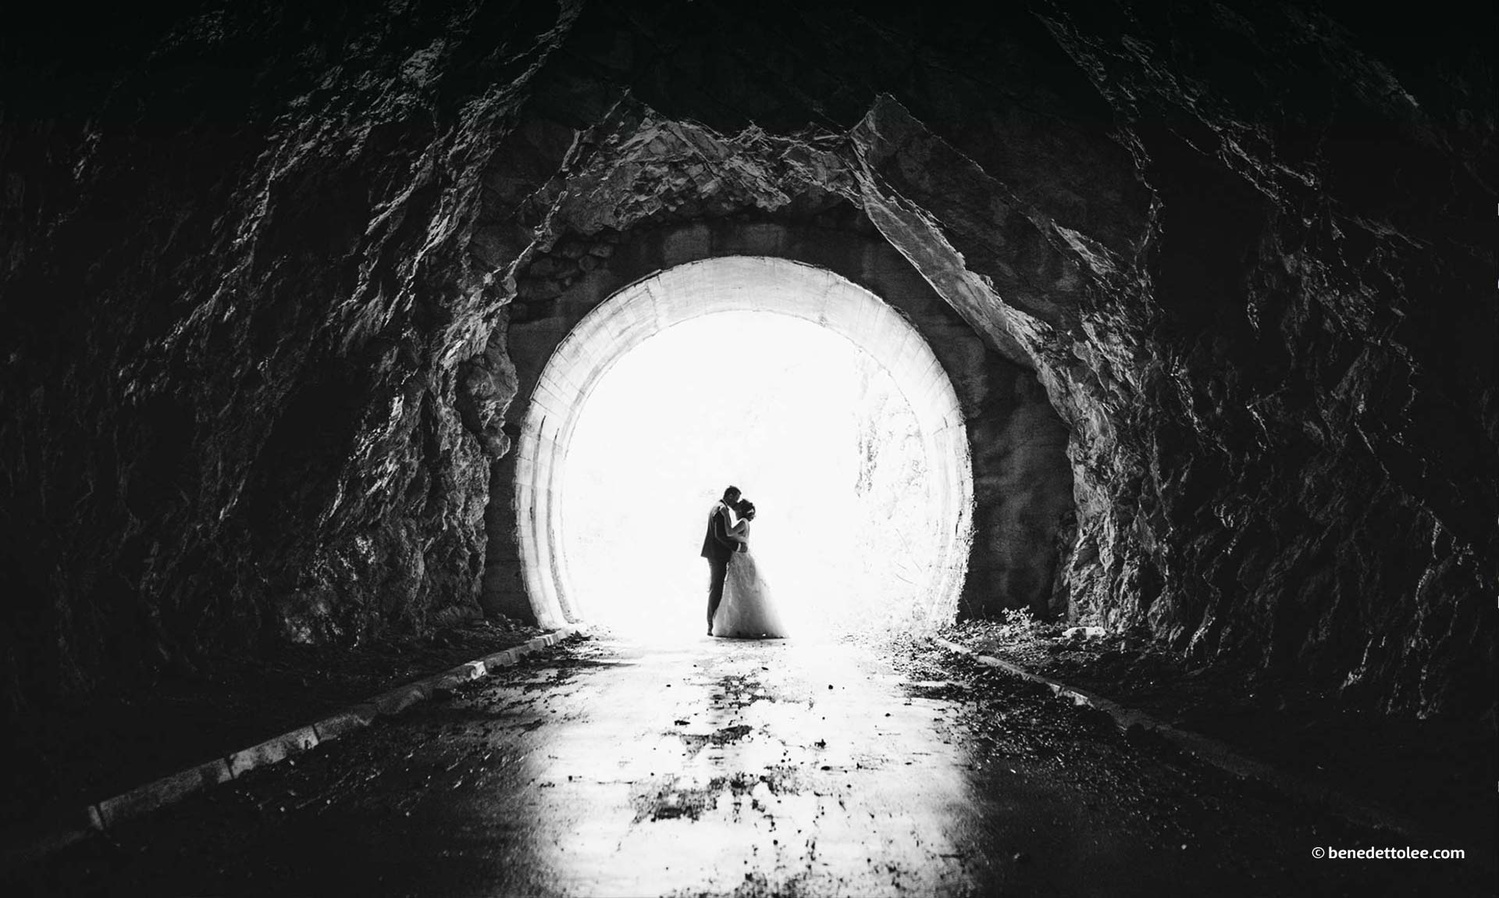 Light at the end of the tunnel by Benedetto Lee